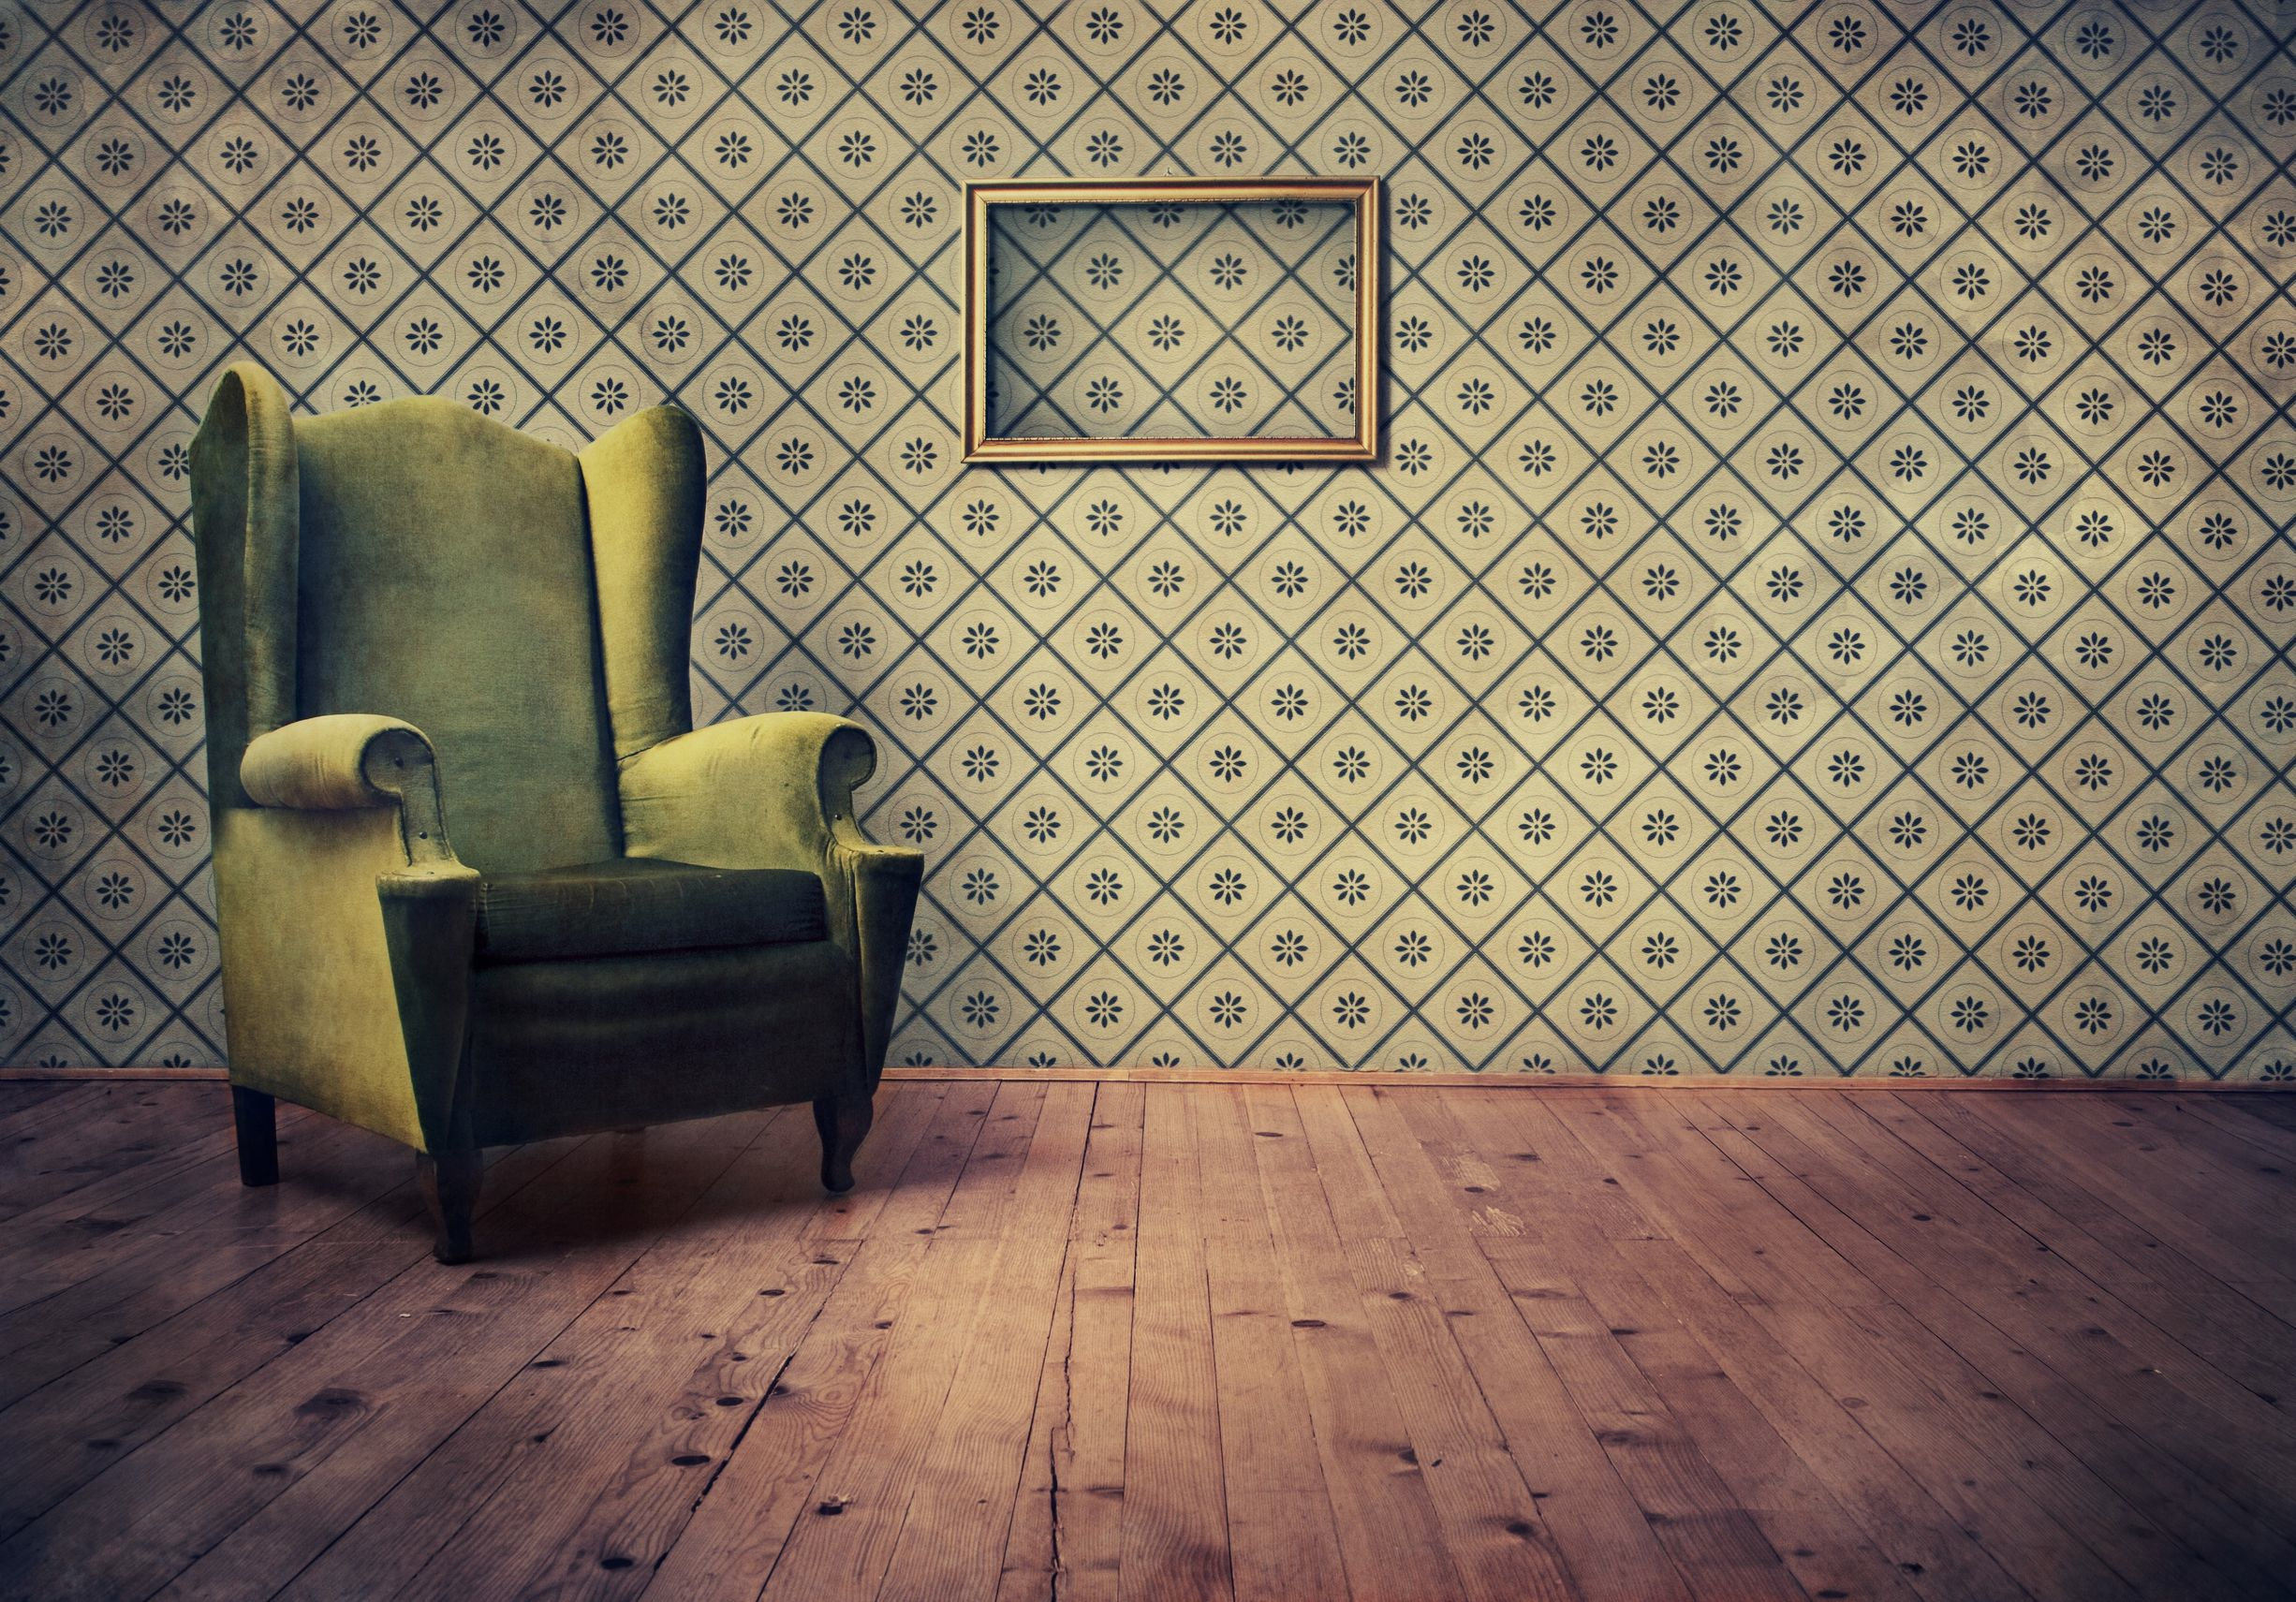 vintage room wallpaper photo - 1